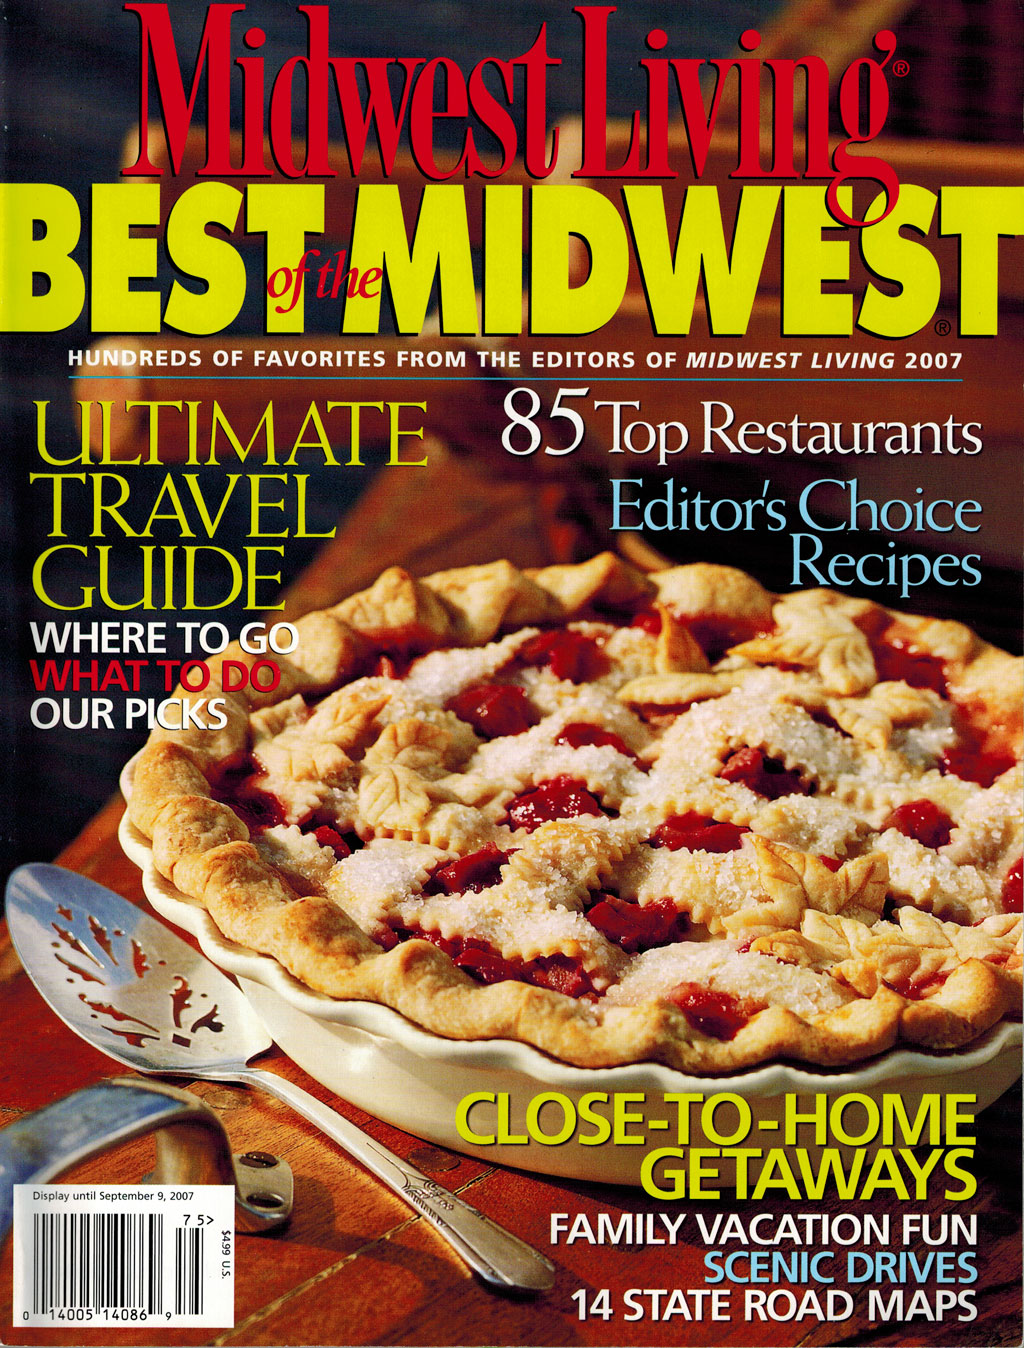 Midwest Living: Best of the Midwest- 2007